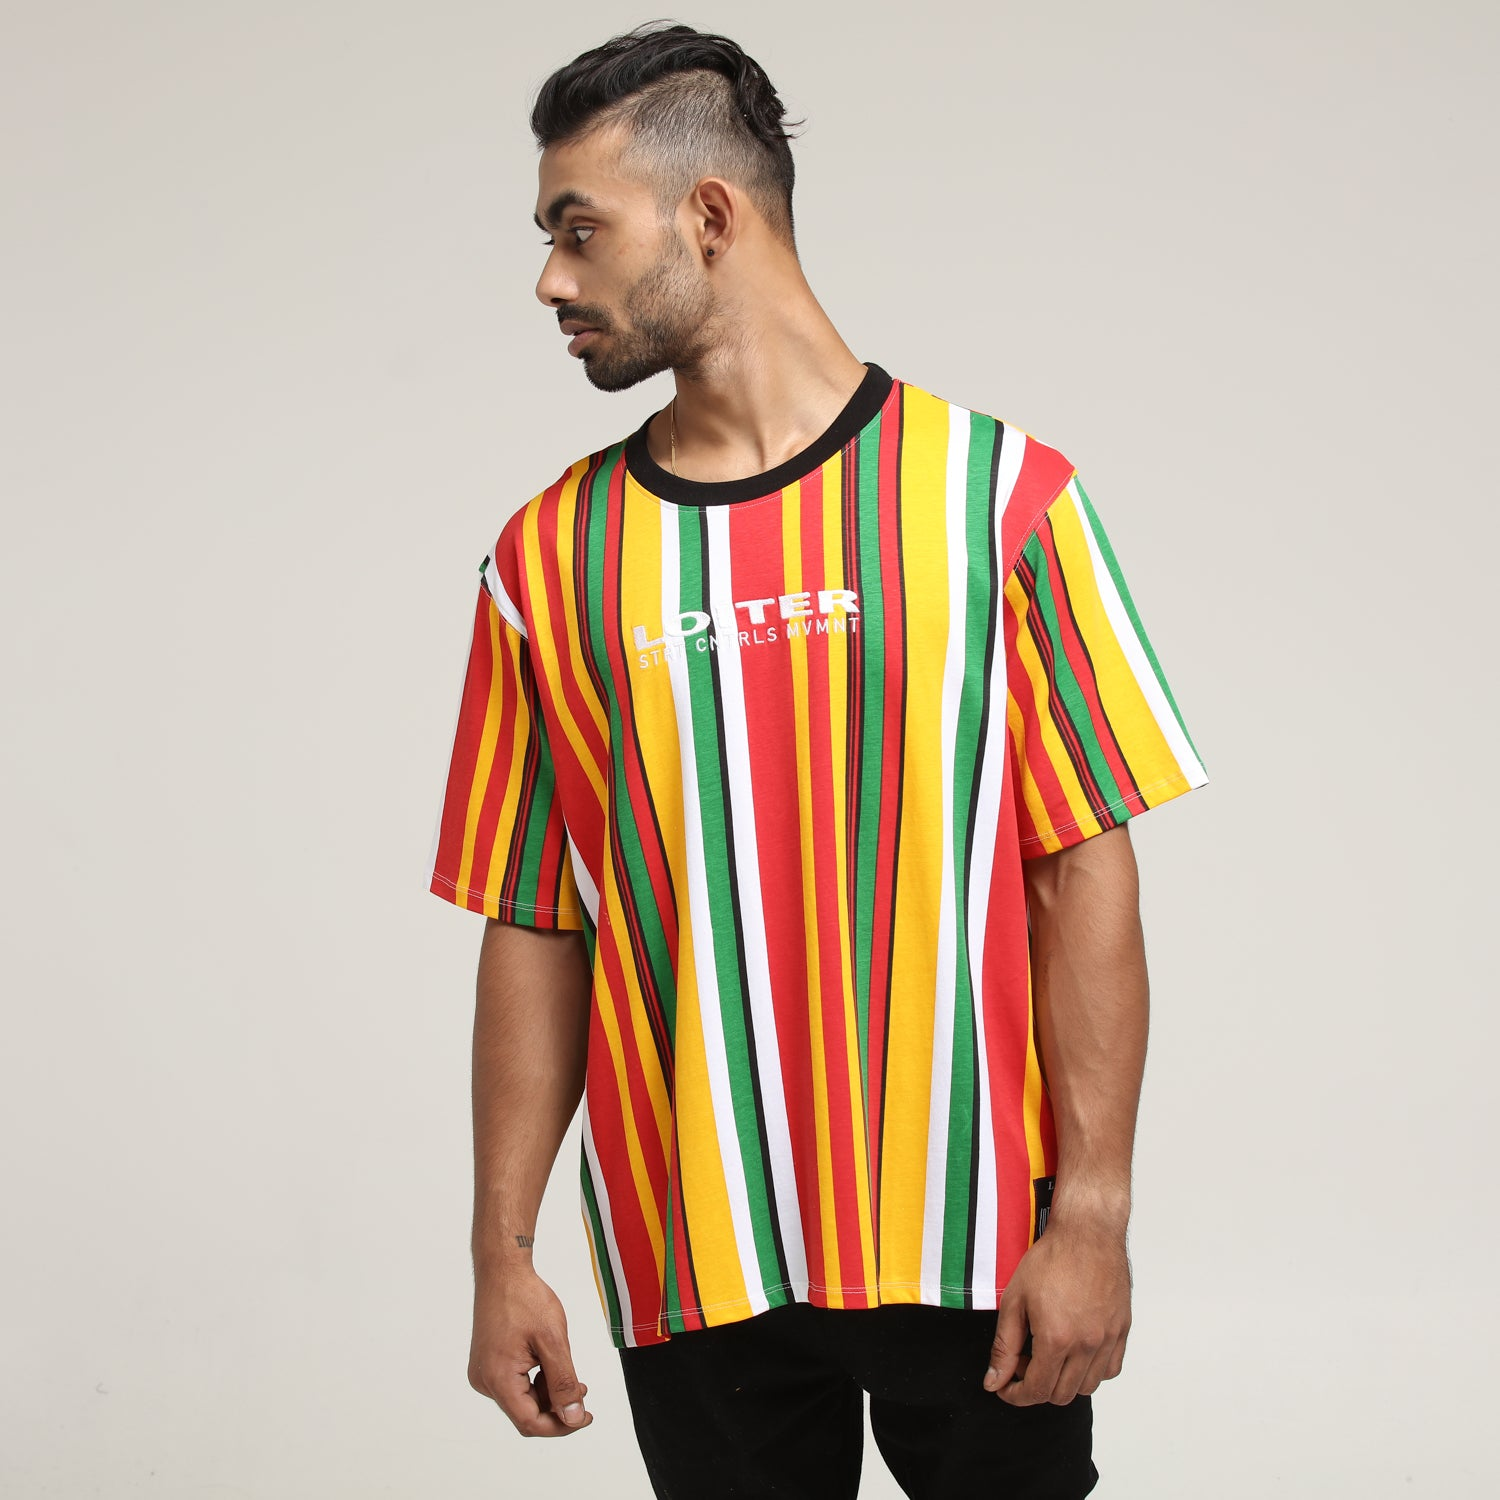 FRUIT SALAD TEE - Red/Yellow/Gree